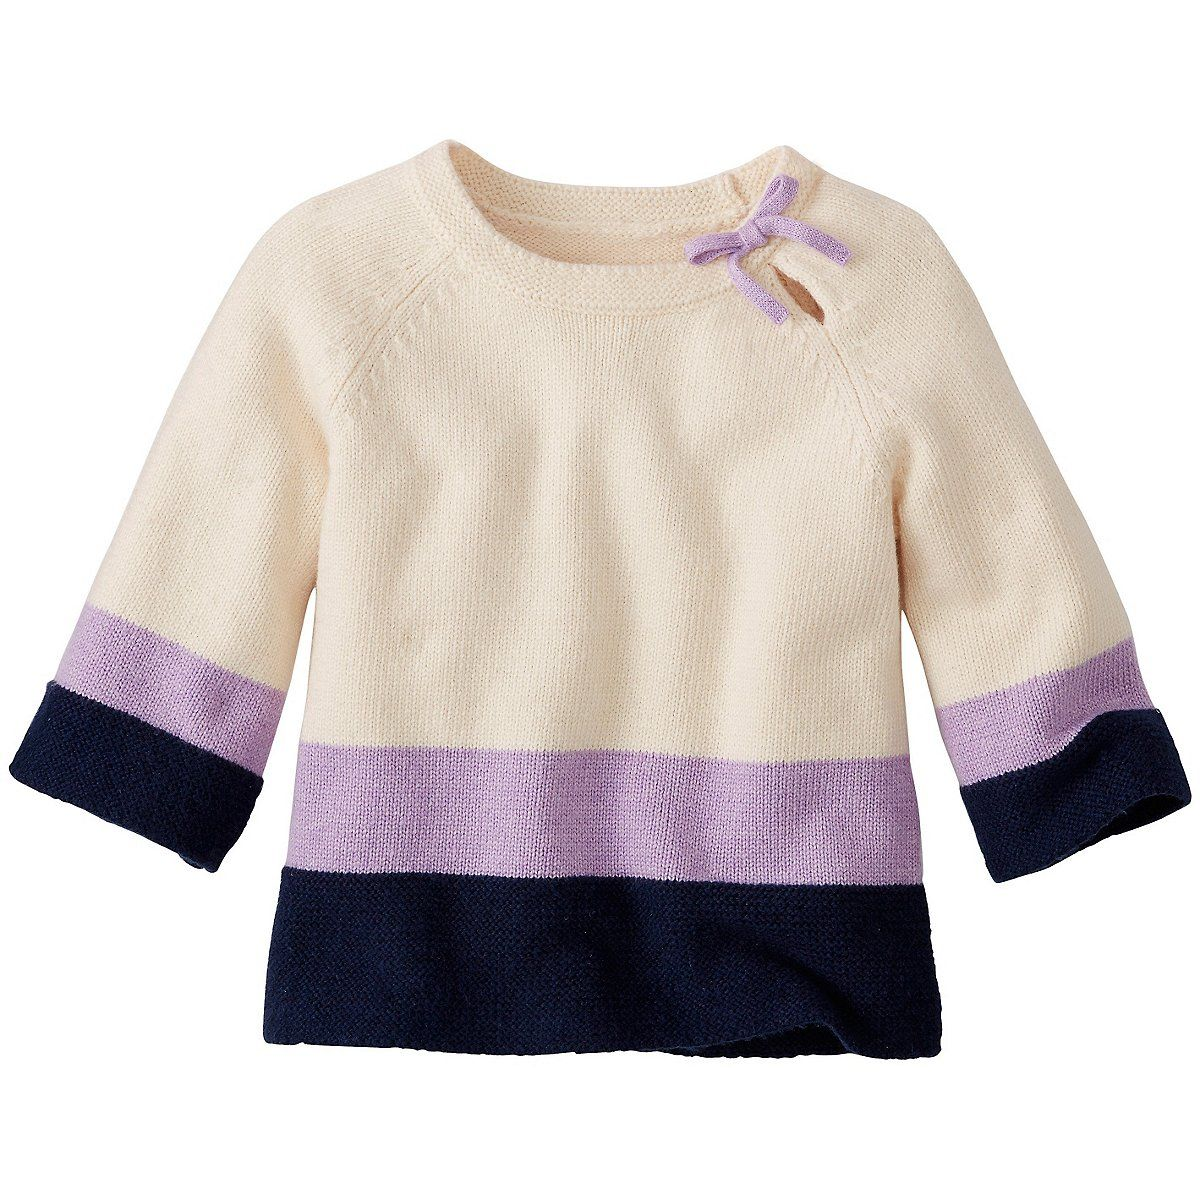 Lilac Layer Sweater by Hanna Andersson